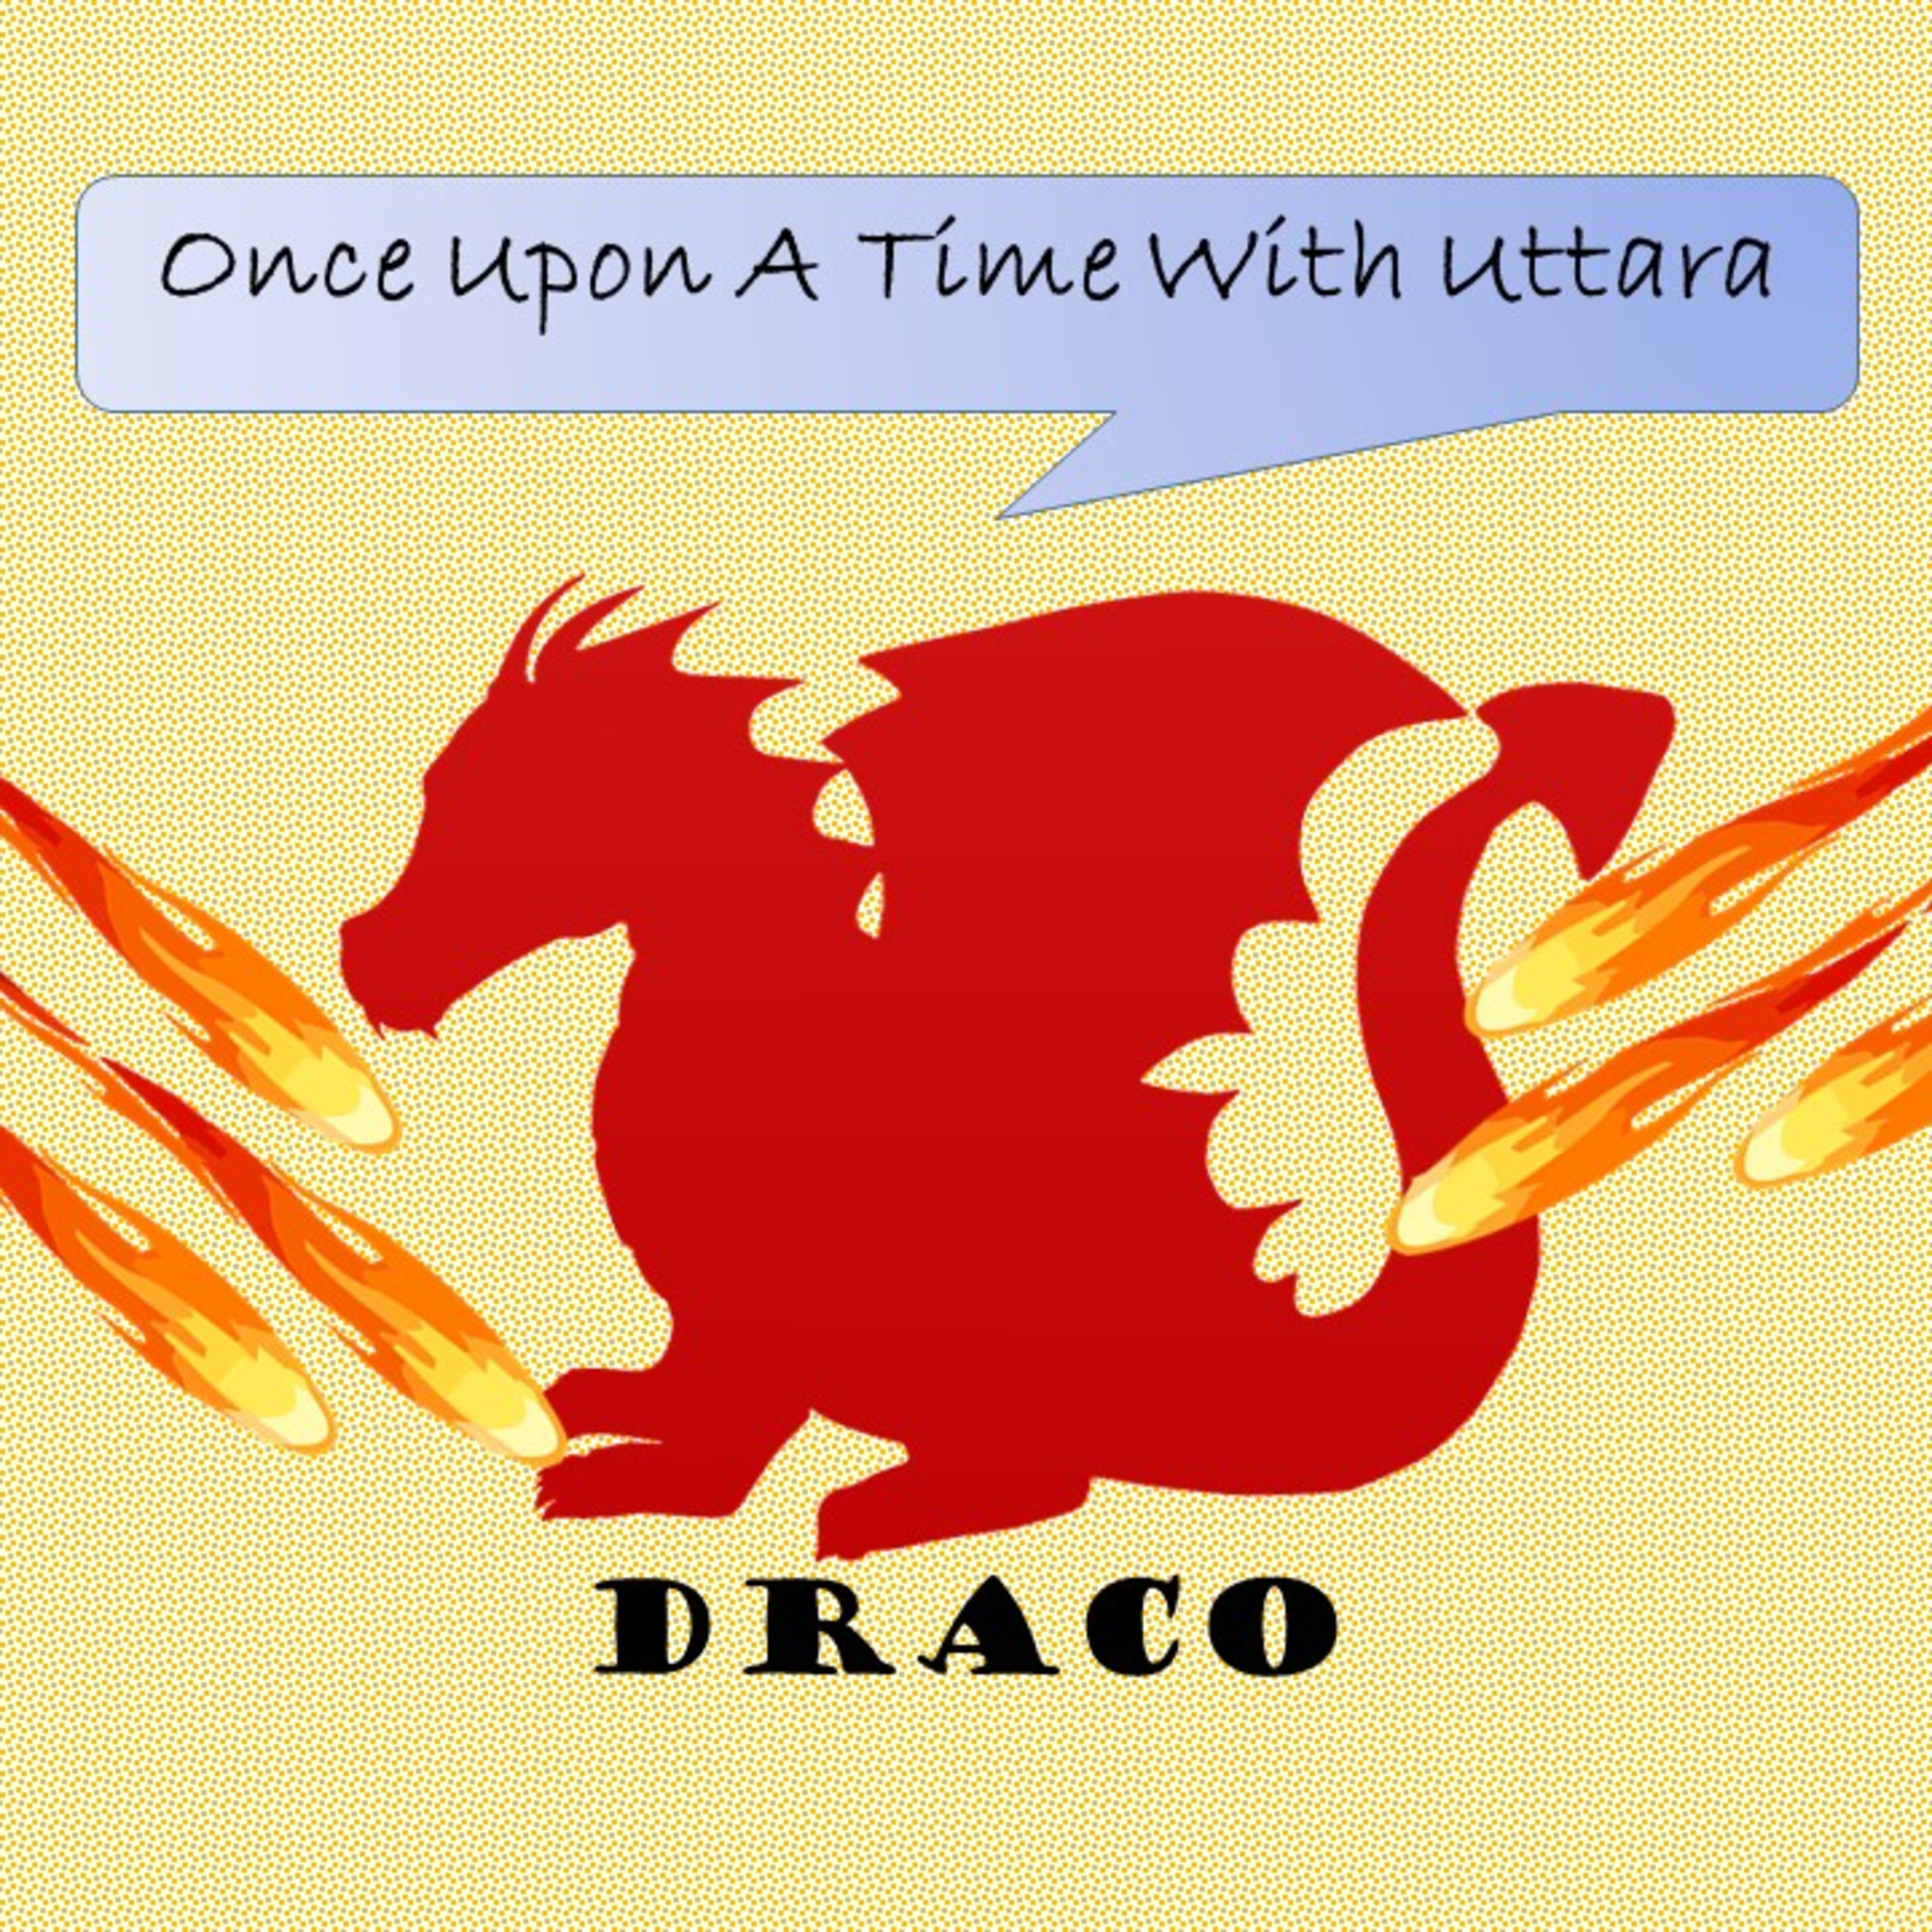 Draco's Adventures Ch 37 – The Commanders And Their Army